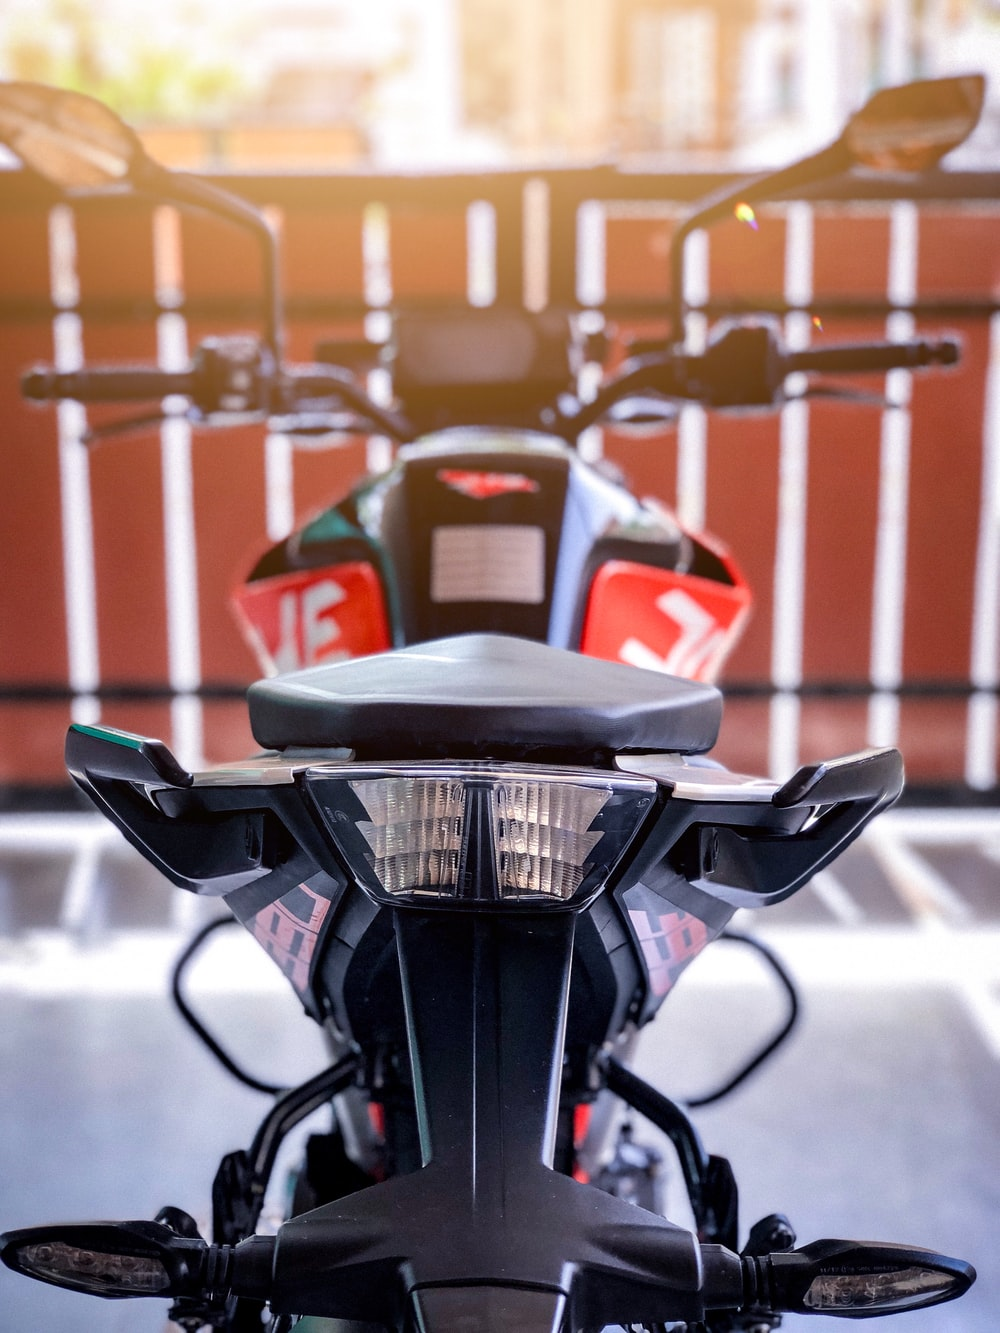 Ktm Duke Pictures Download Free Images On Unsplash